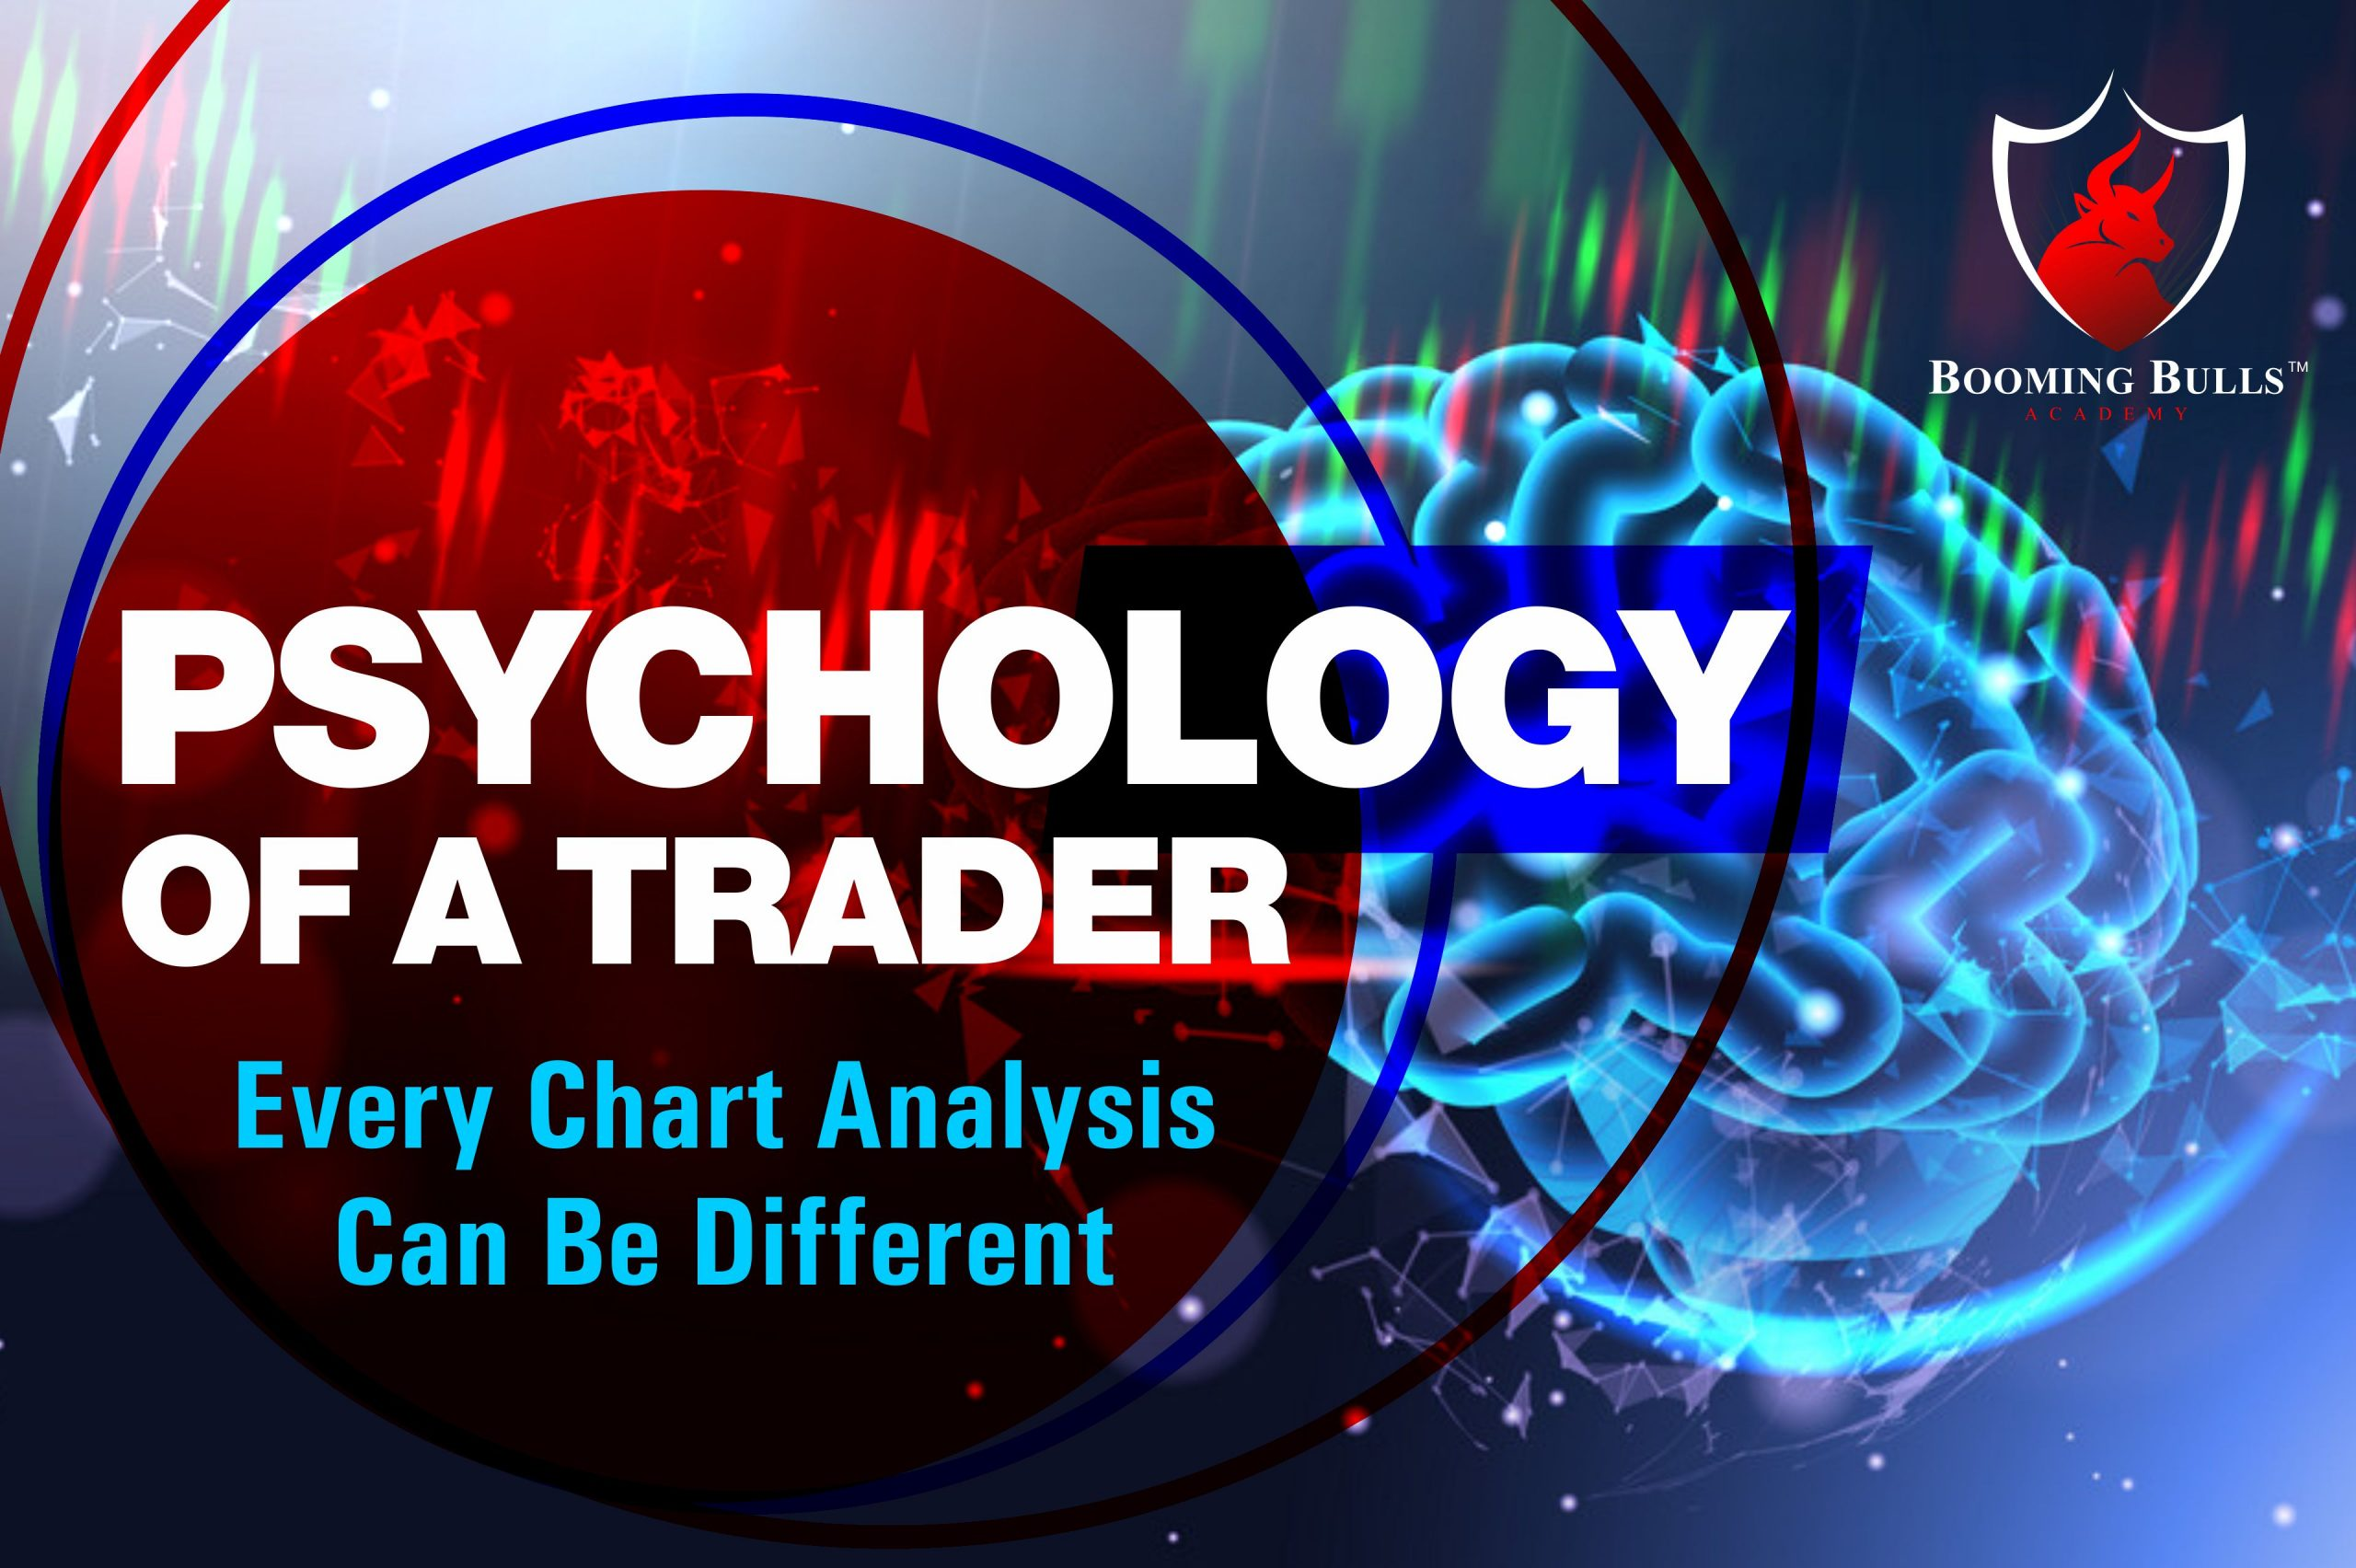 Every Chart Analysis Can Be Different | Psychology of a Trader